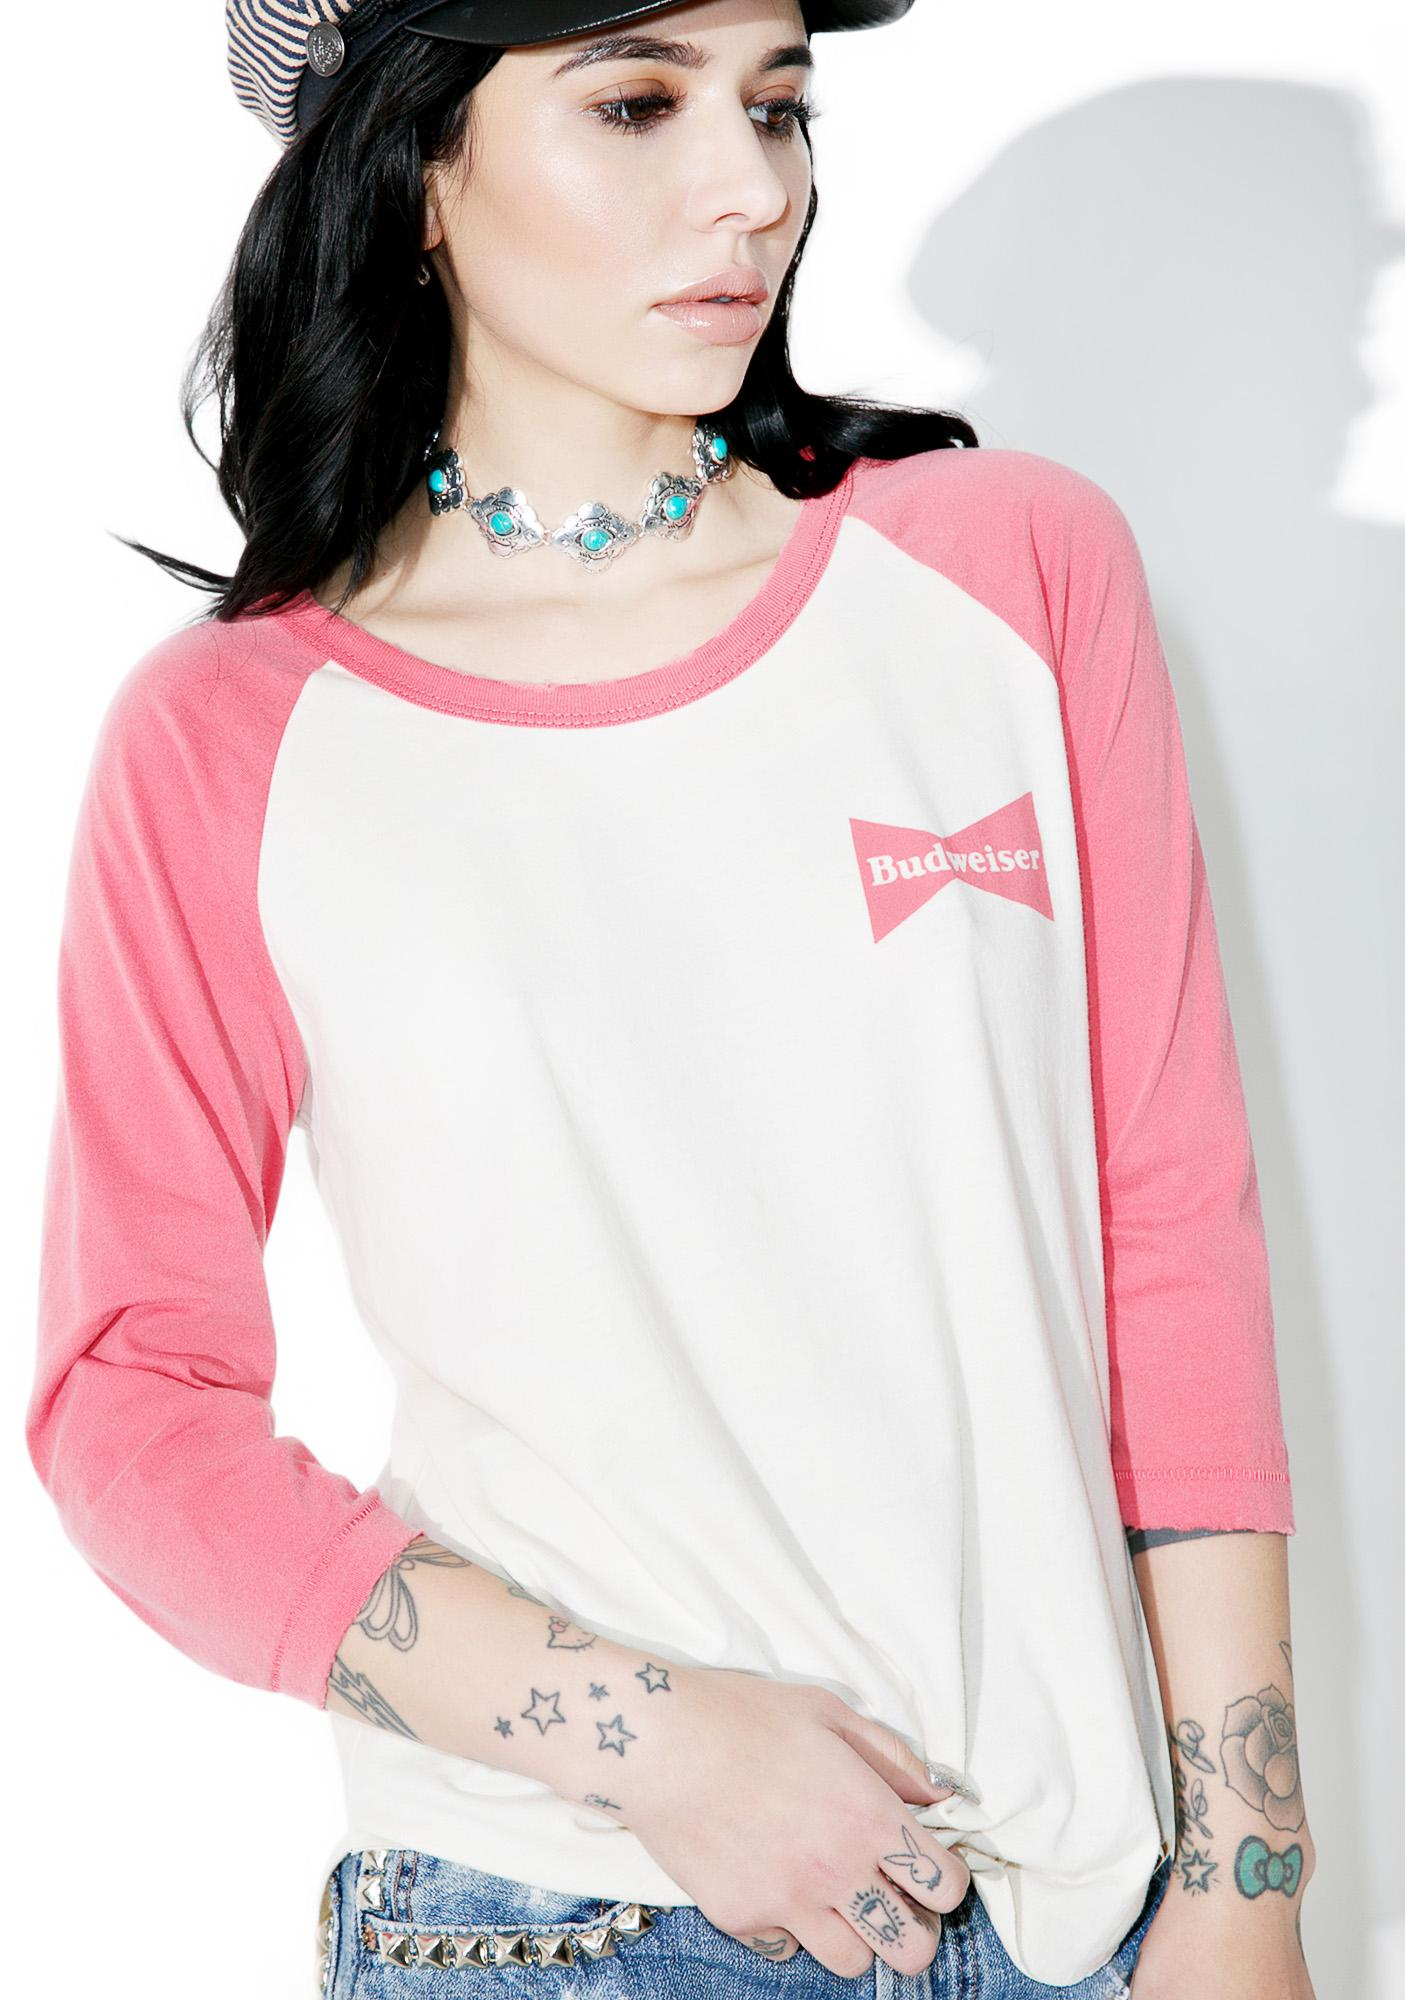 Junk Food Clothing Budweiser Raglan Tee